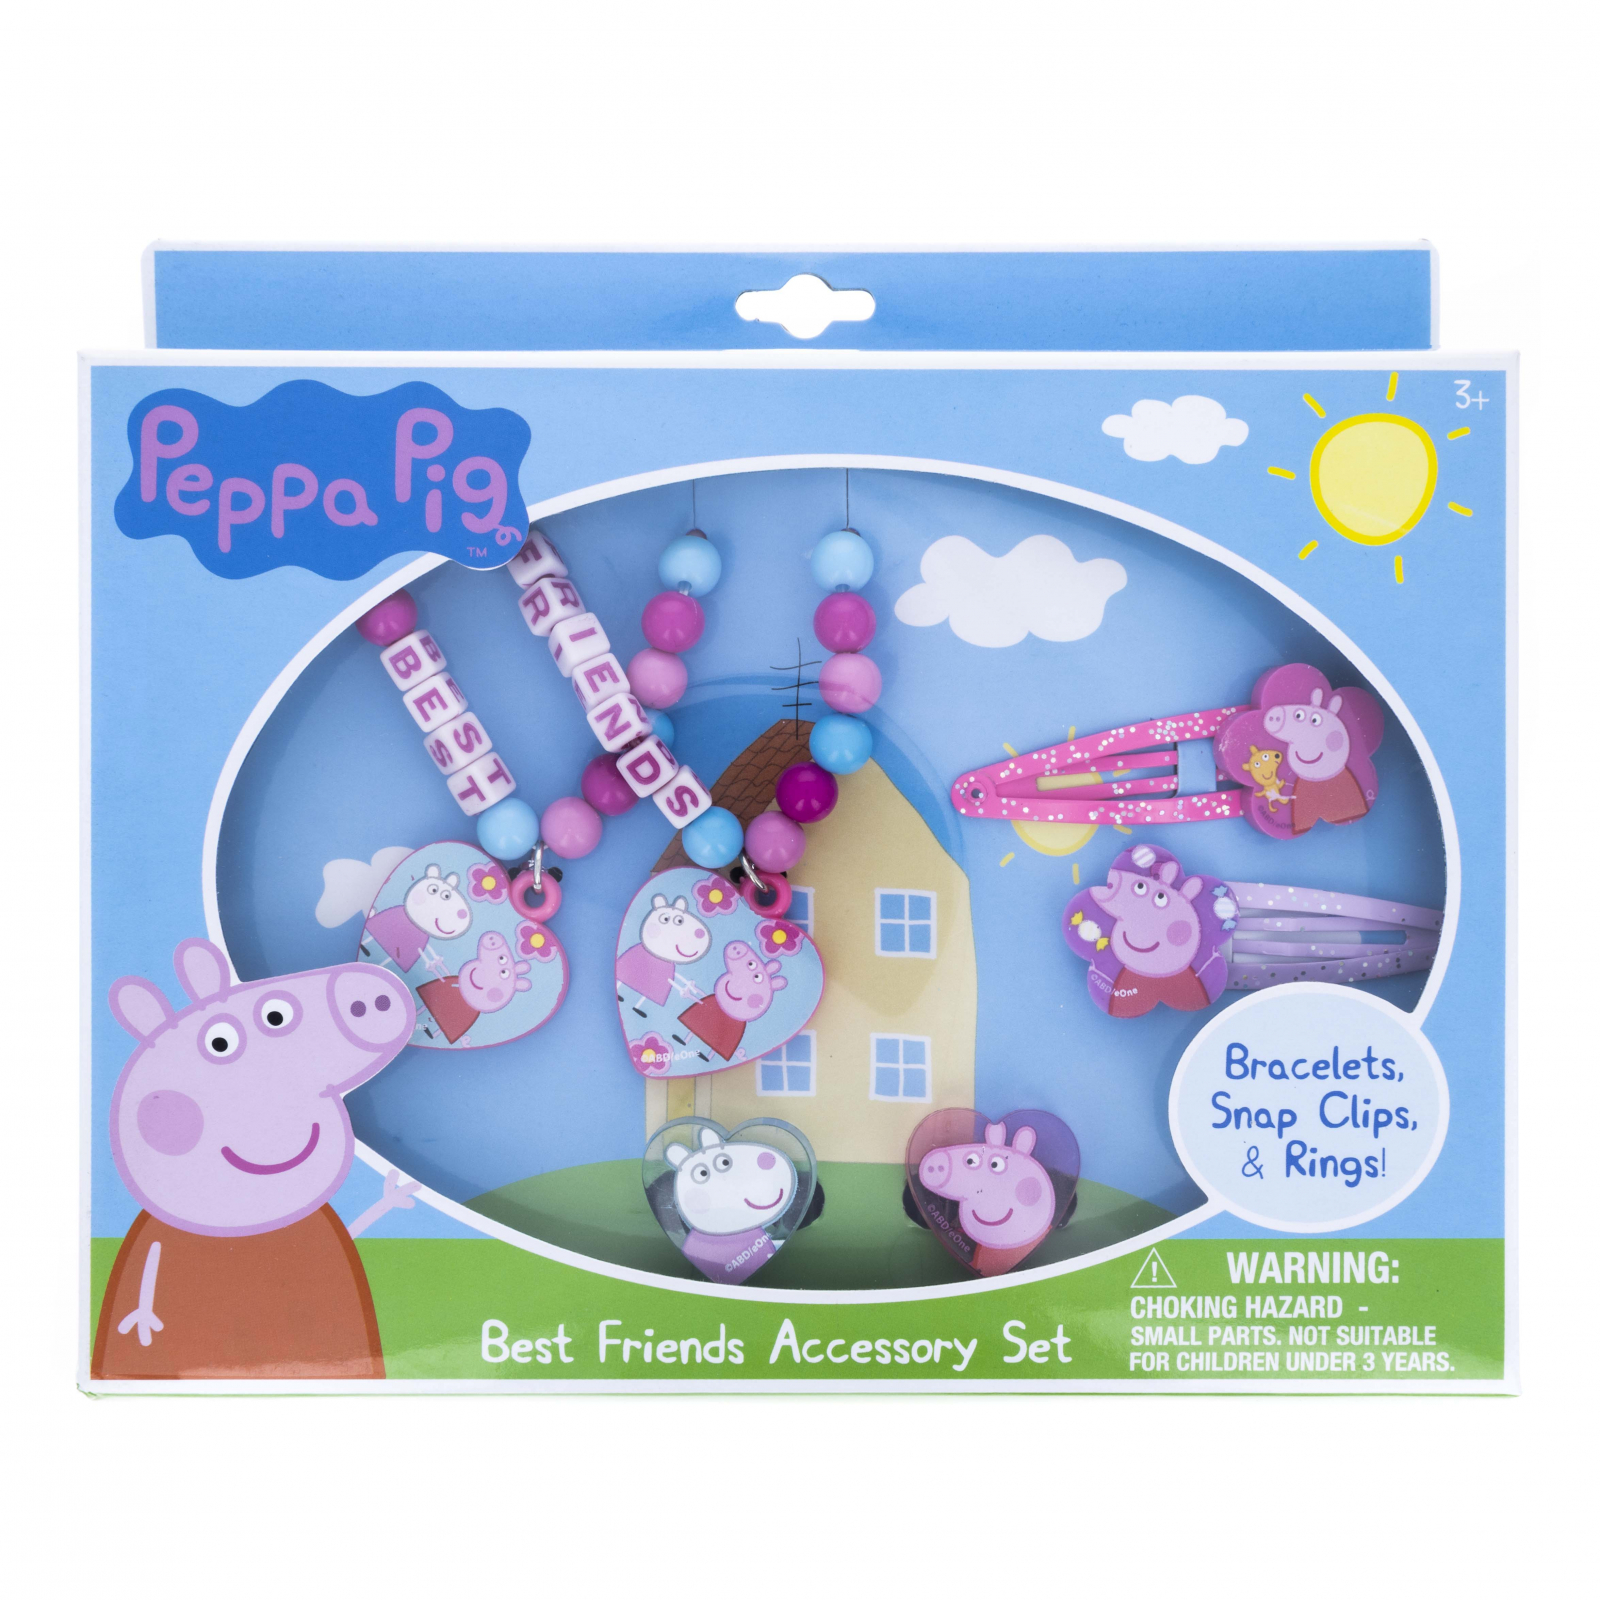 Peppa Pig Best Friends Jewelry and Hair Accessories Kit 6pc